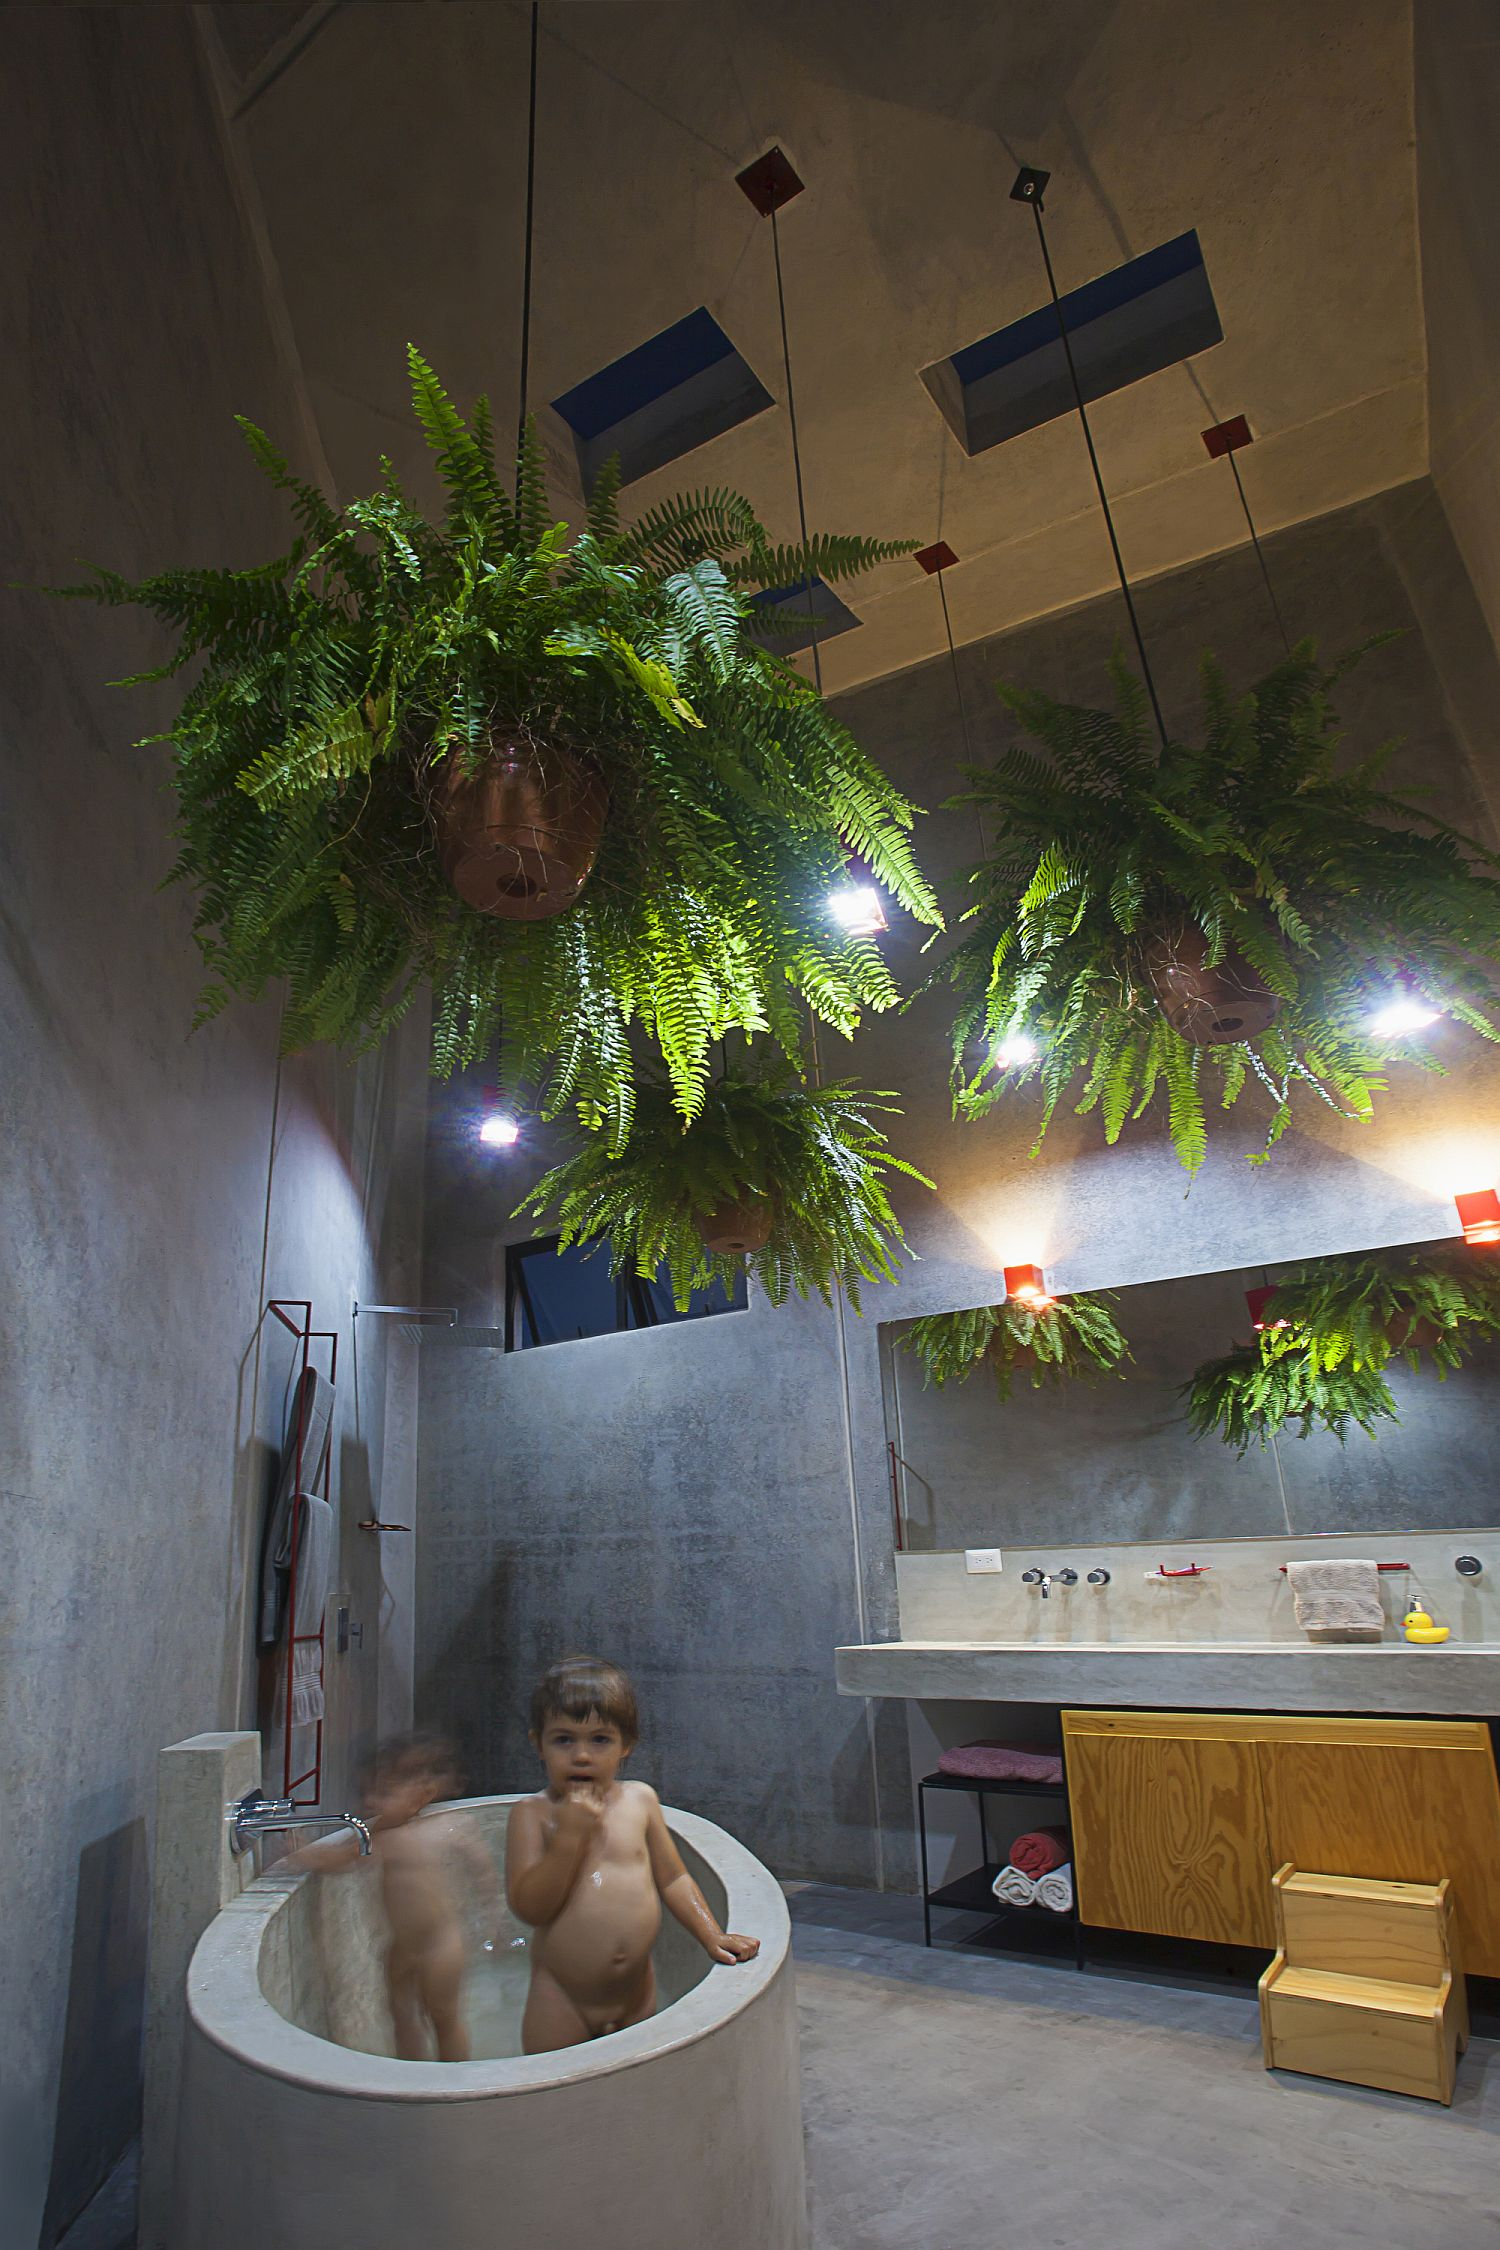 Modern bathroom in concrete with hanging plants